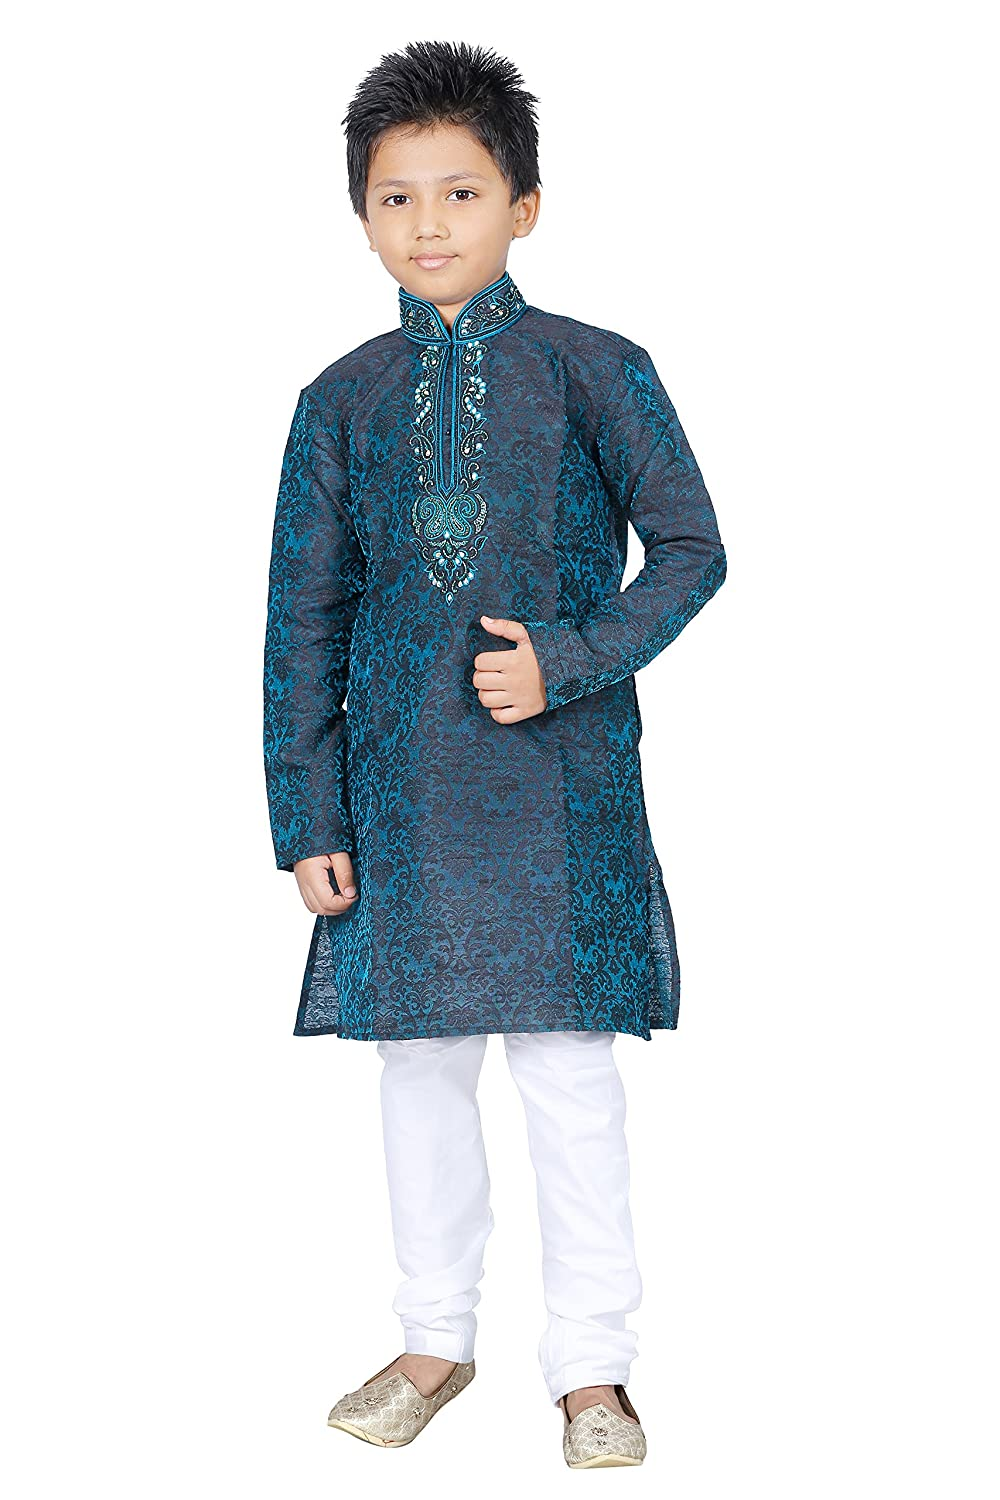 Amazon.com: Indian Kurta Sherwani Boys Suit In Blue (2 Pcs) 1-12 ...